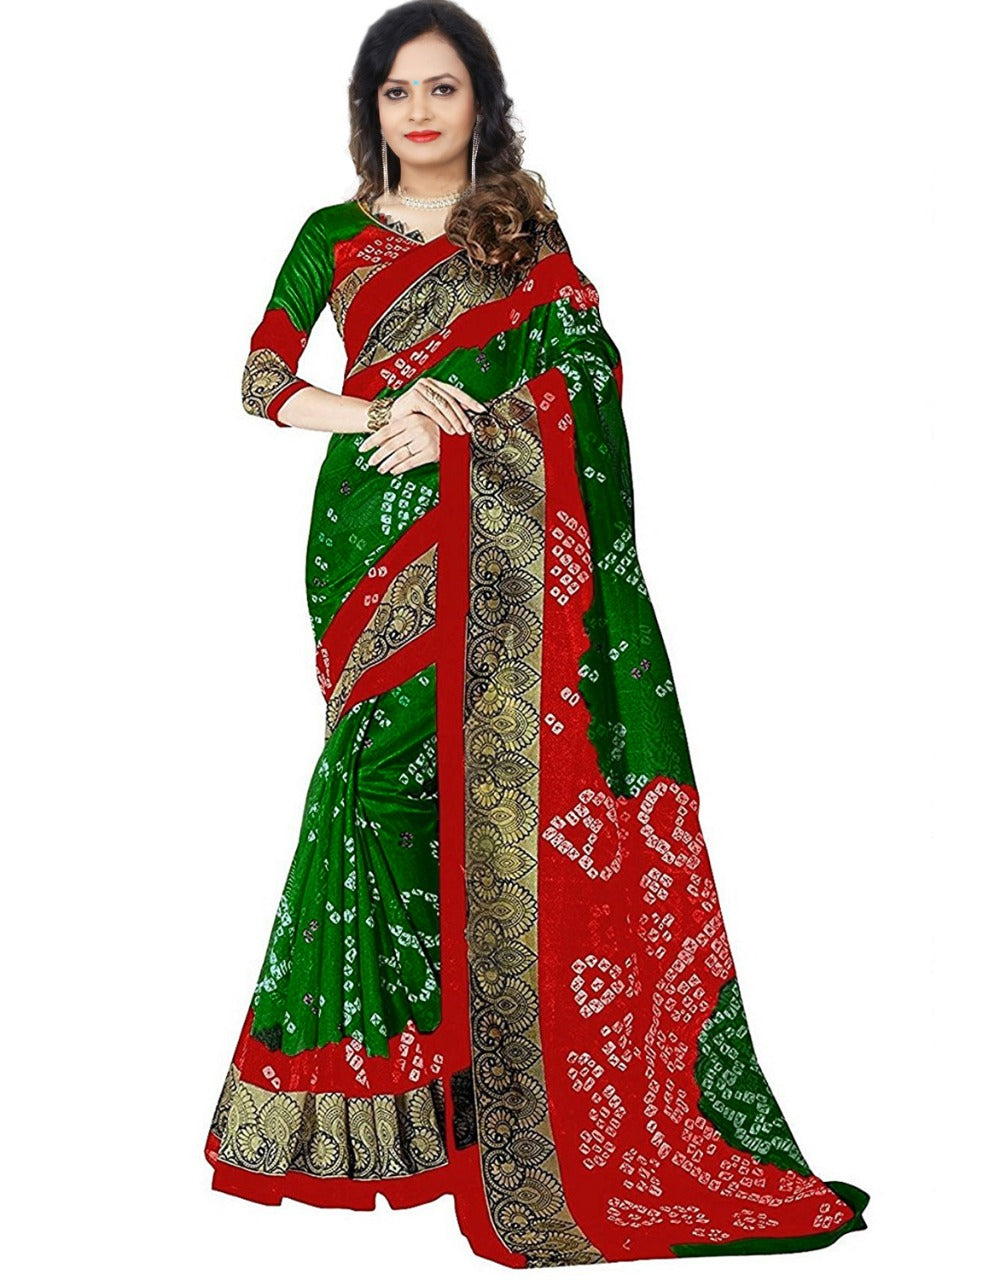 Bandhani-6 Printed Bhagalpuri Saree With Blouse Piece